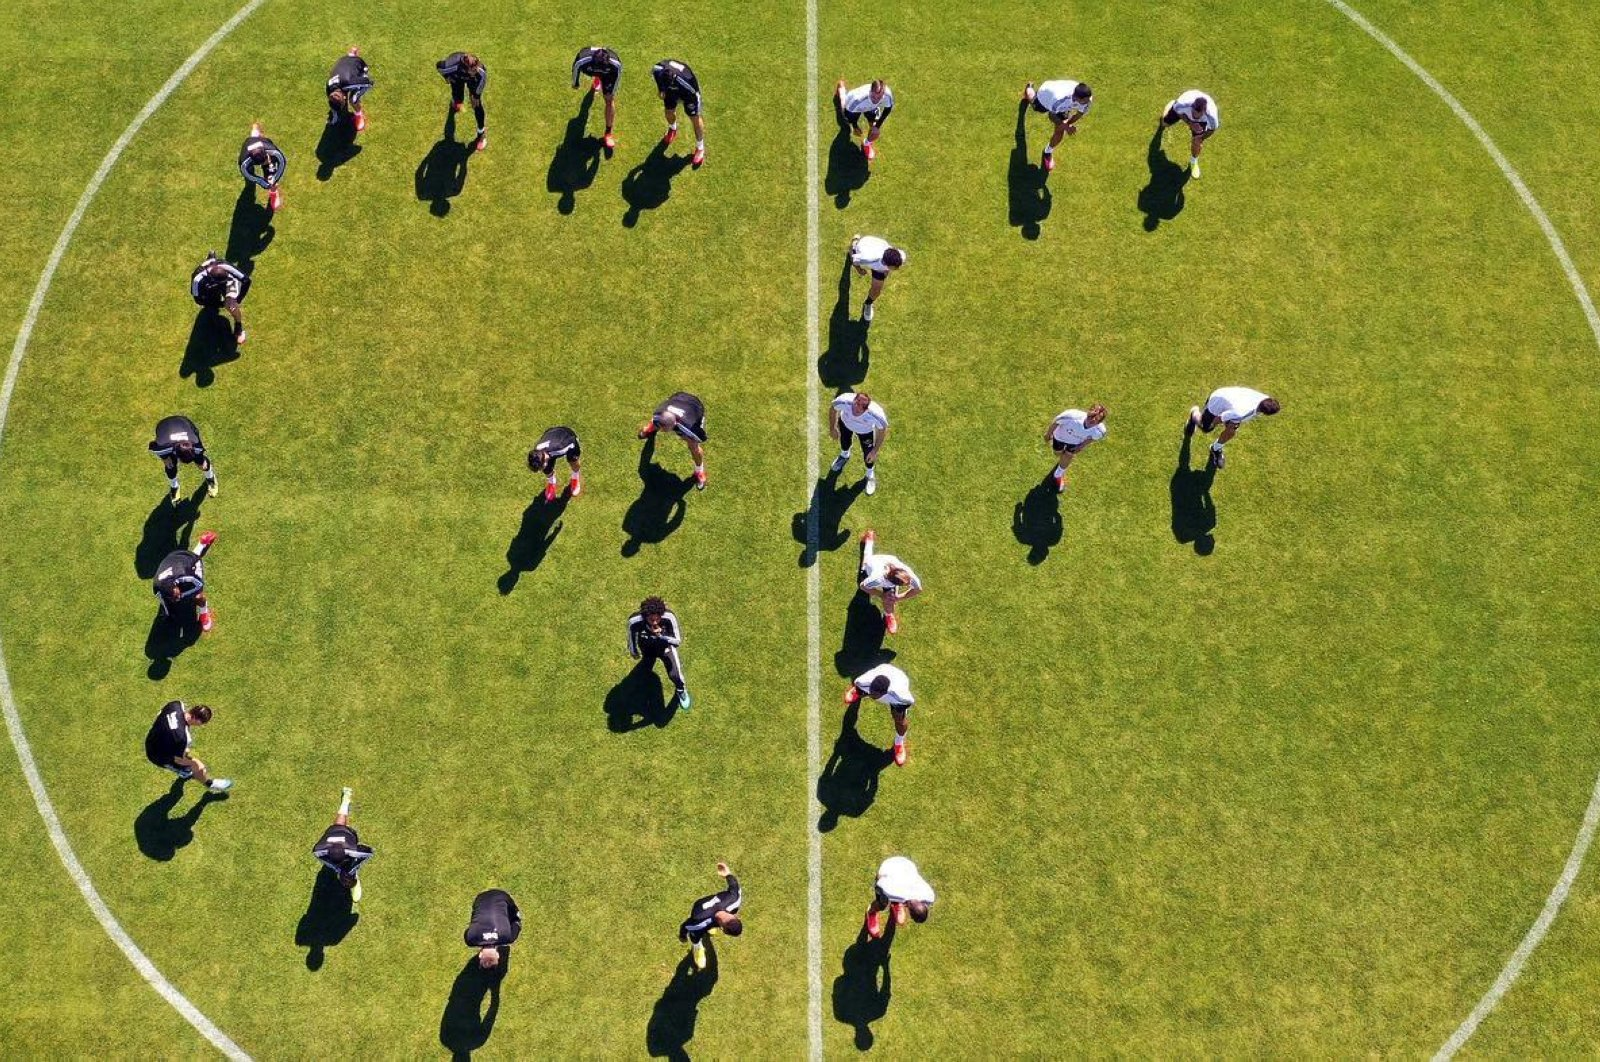 Beşiktaş players spell out George Floyd's initials during a training session in Istanbul, Turkey, June 6, 2020. (AA Photo)